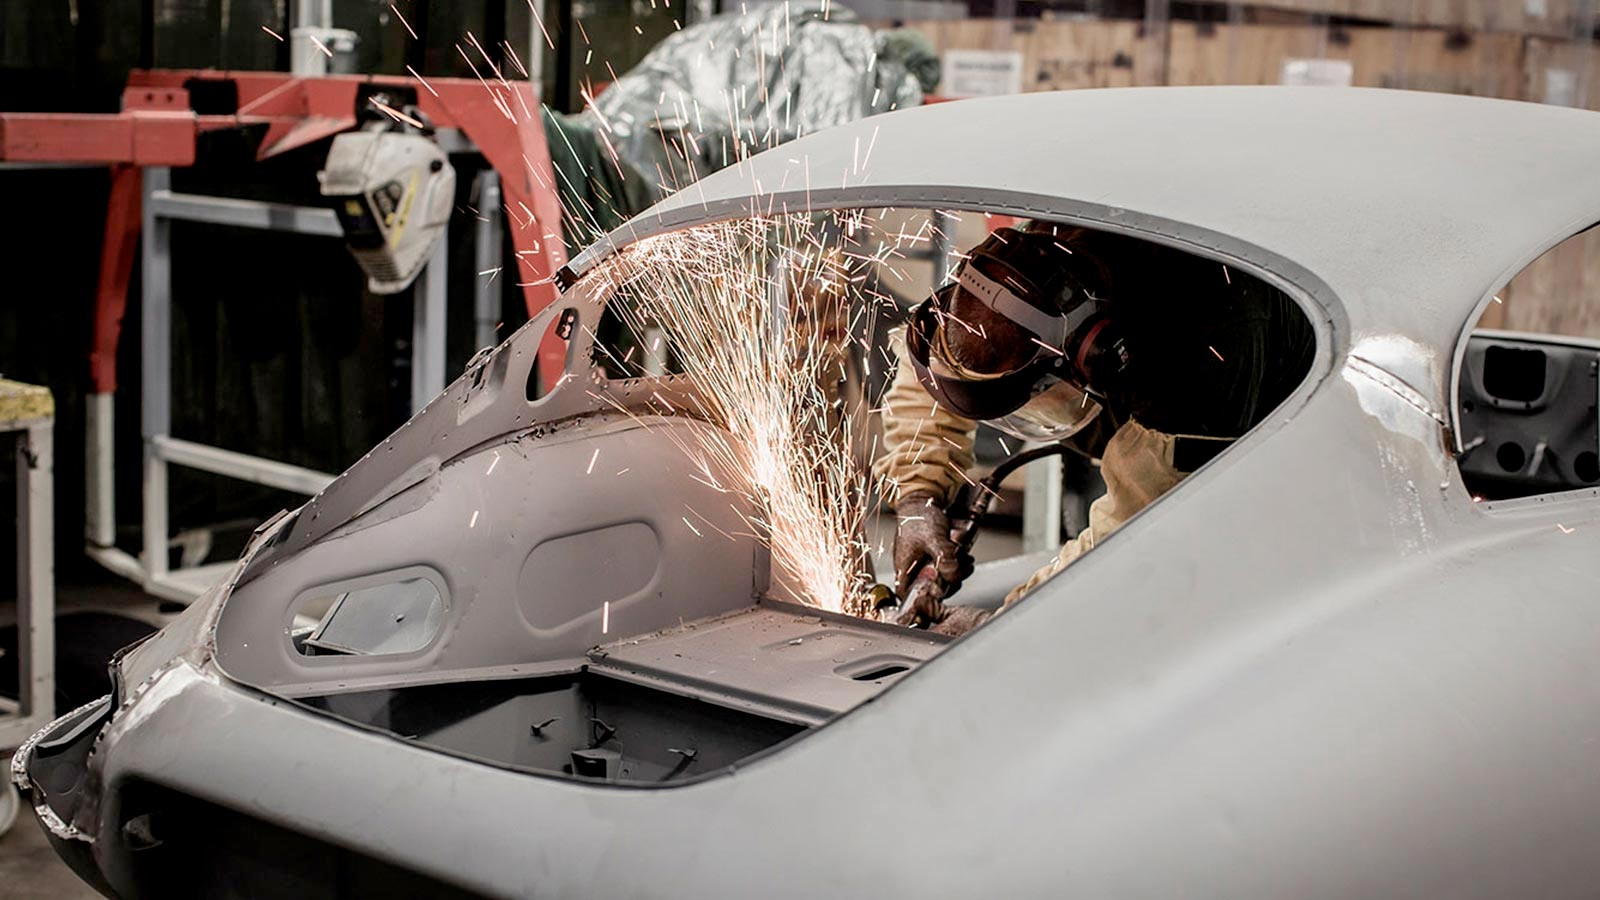 A mechanic working on the back of a chassis of an Jaguar E-TYPE.